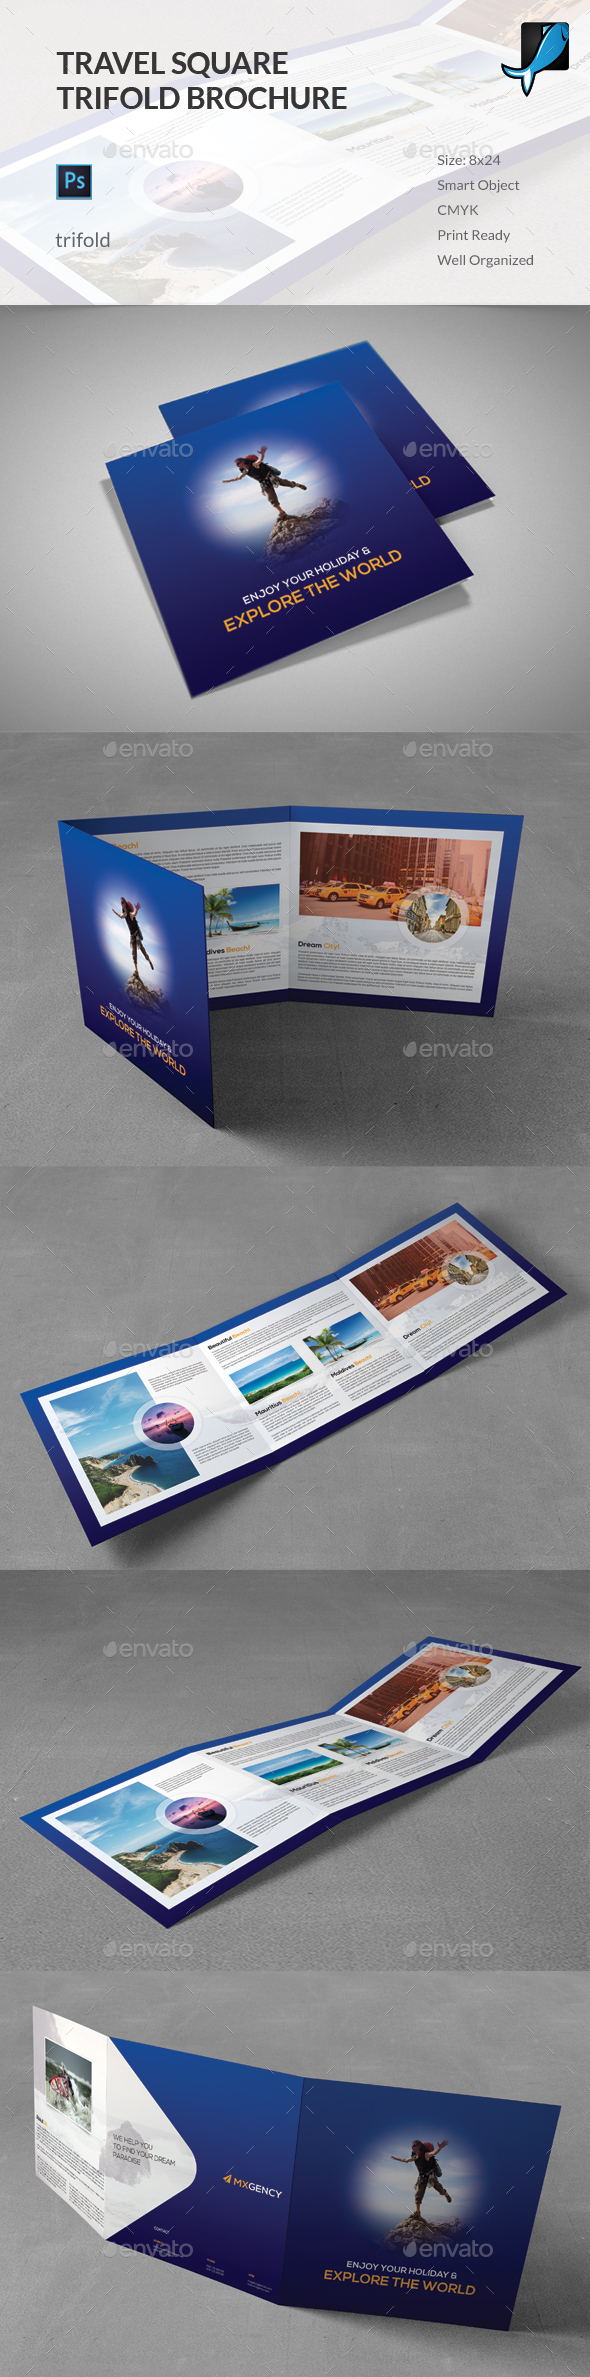 Travel Square Trifold Brochure - Corporate Brochures